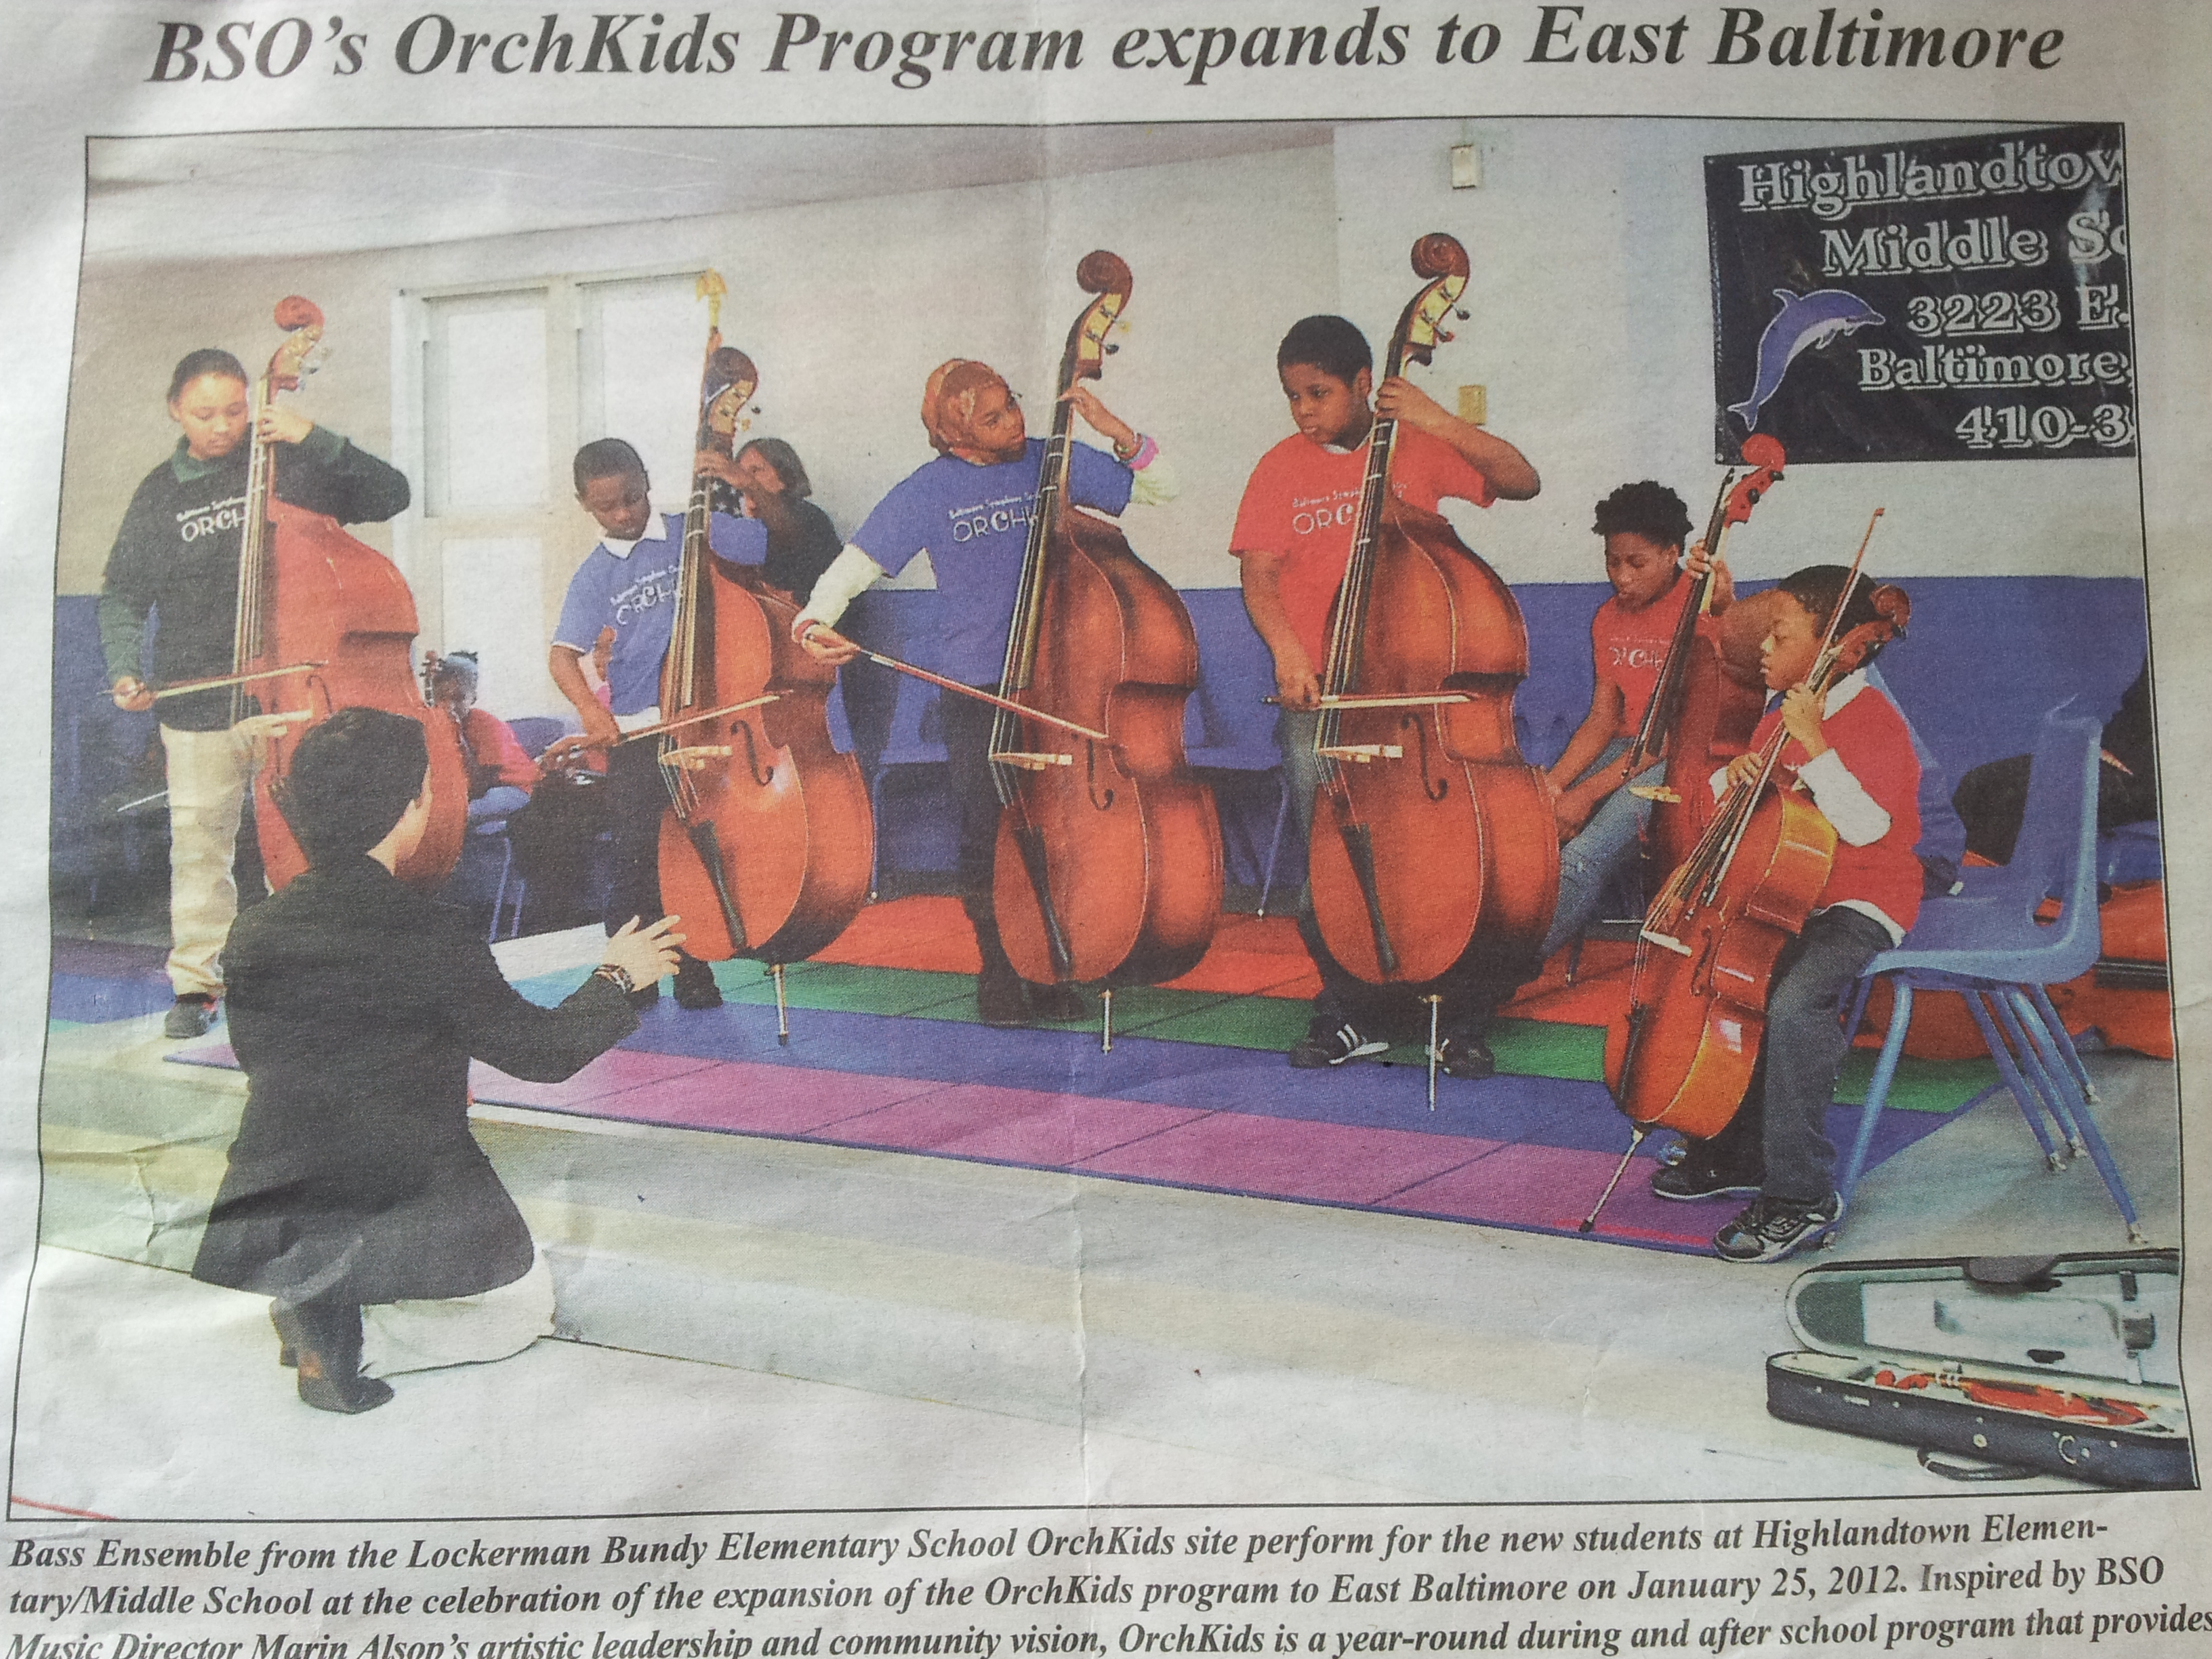 BSO ORCHkids program